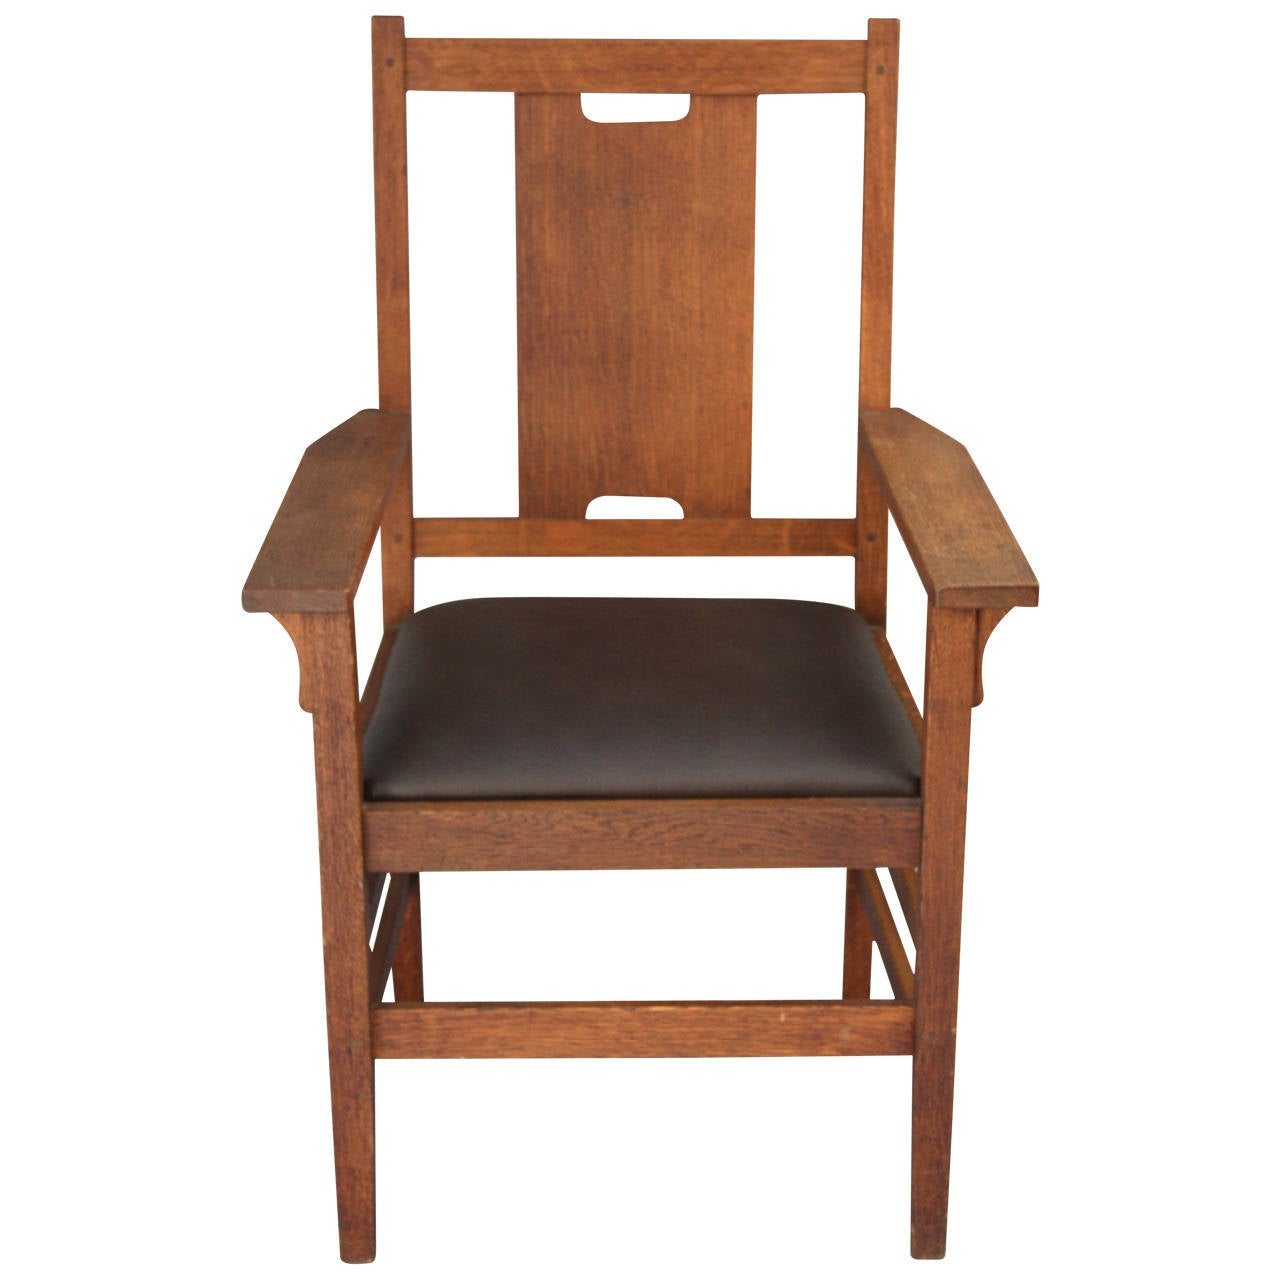 Stickley Chair H Back Arts And Crafts Chair Attributed To Gustav Stickley